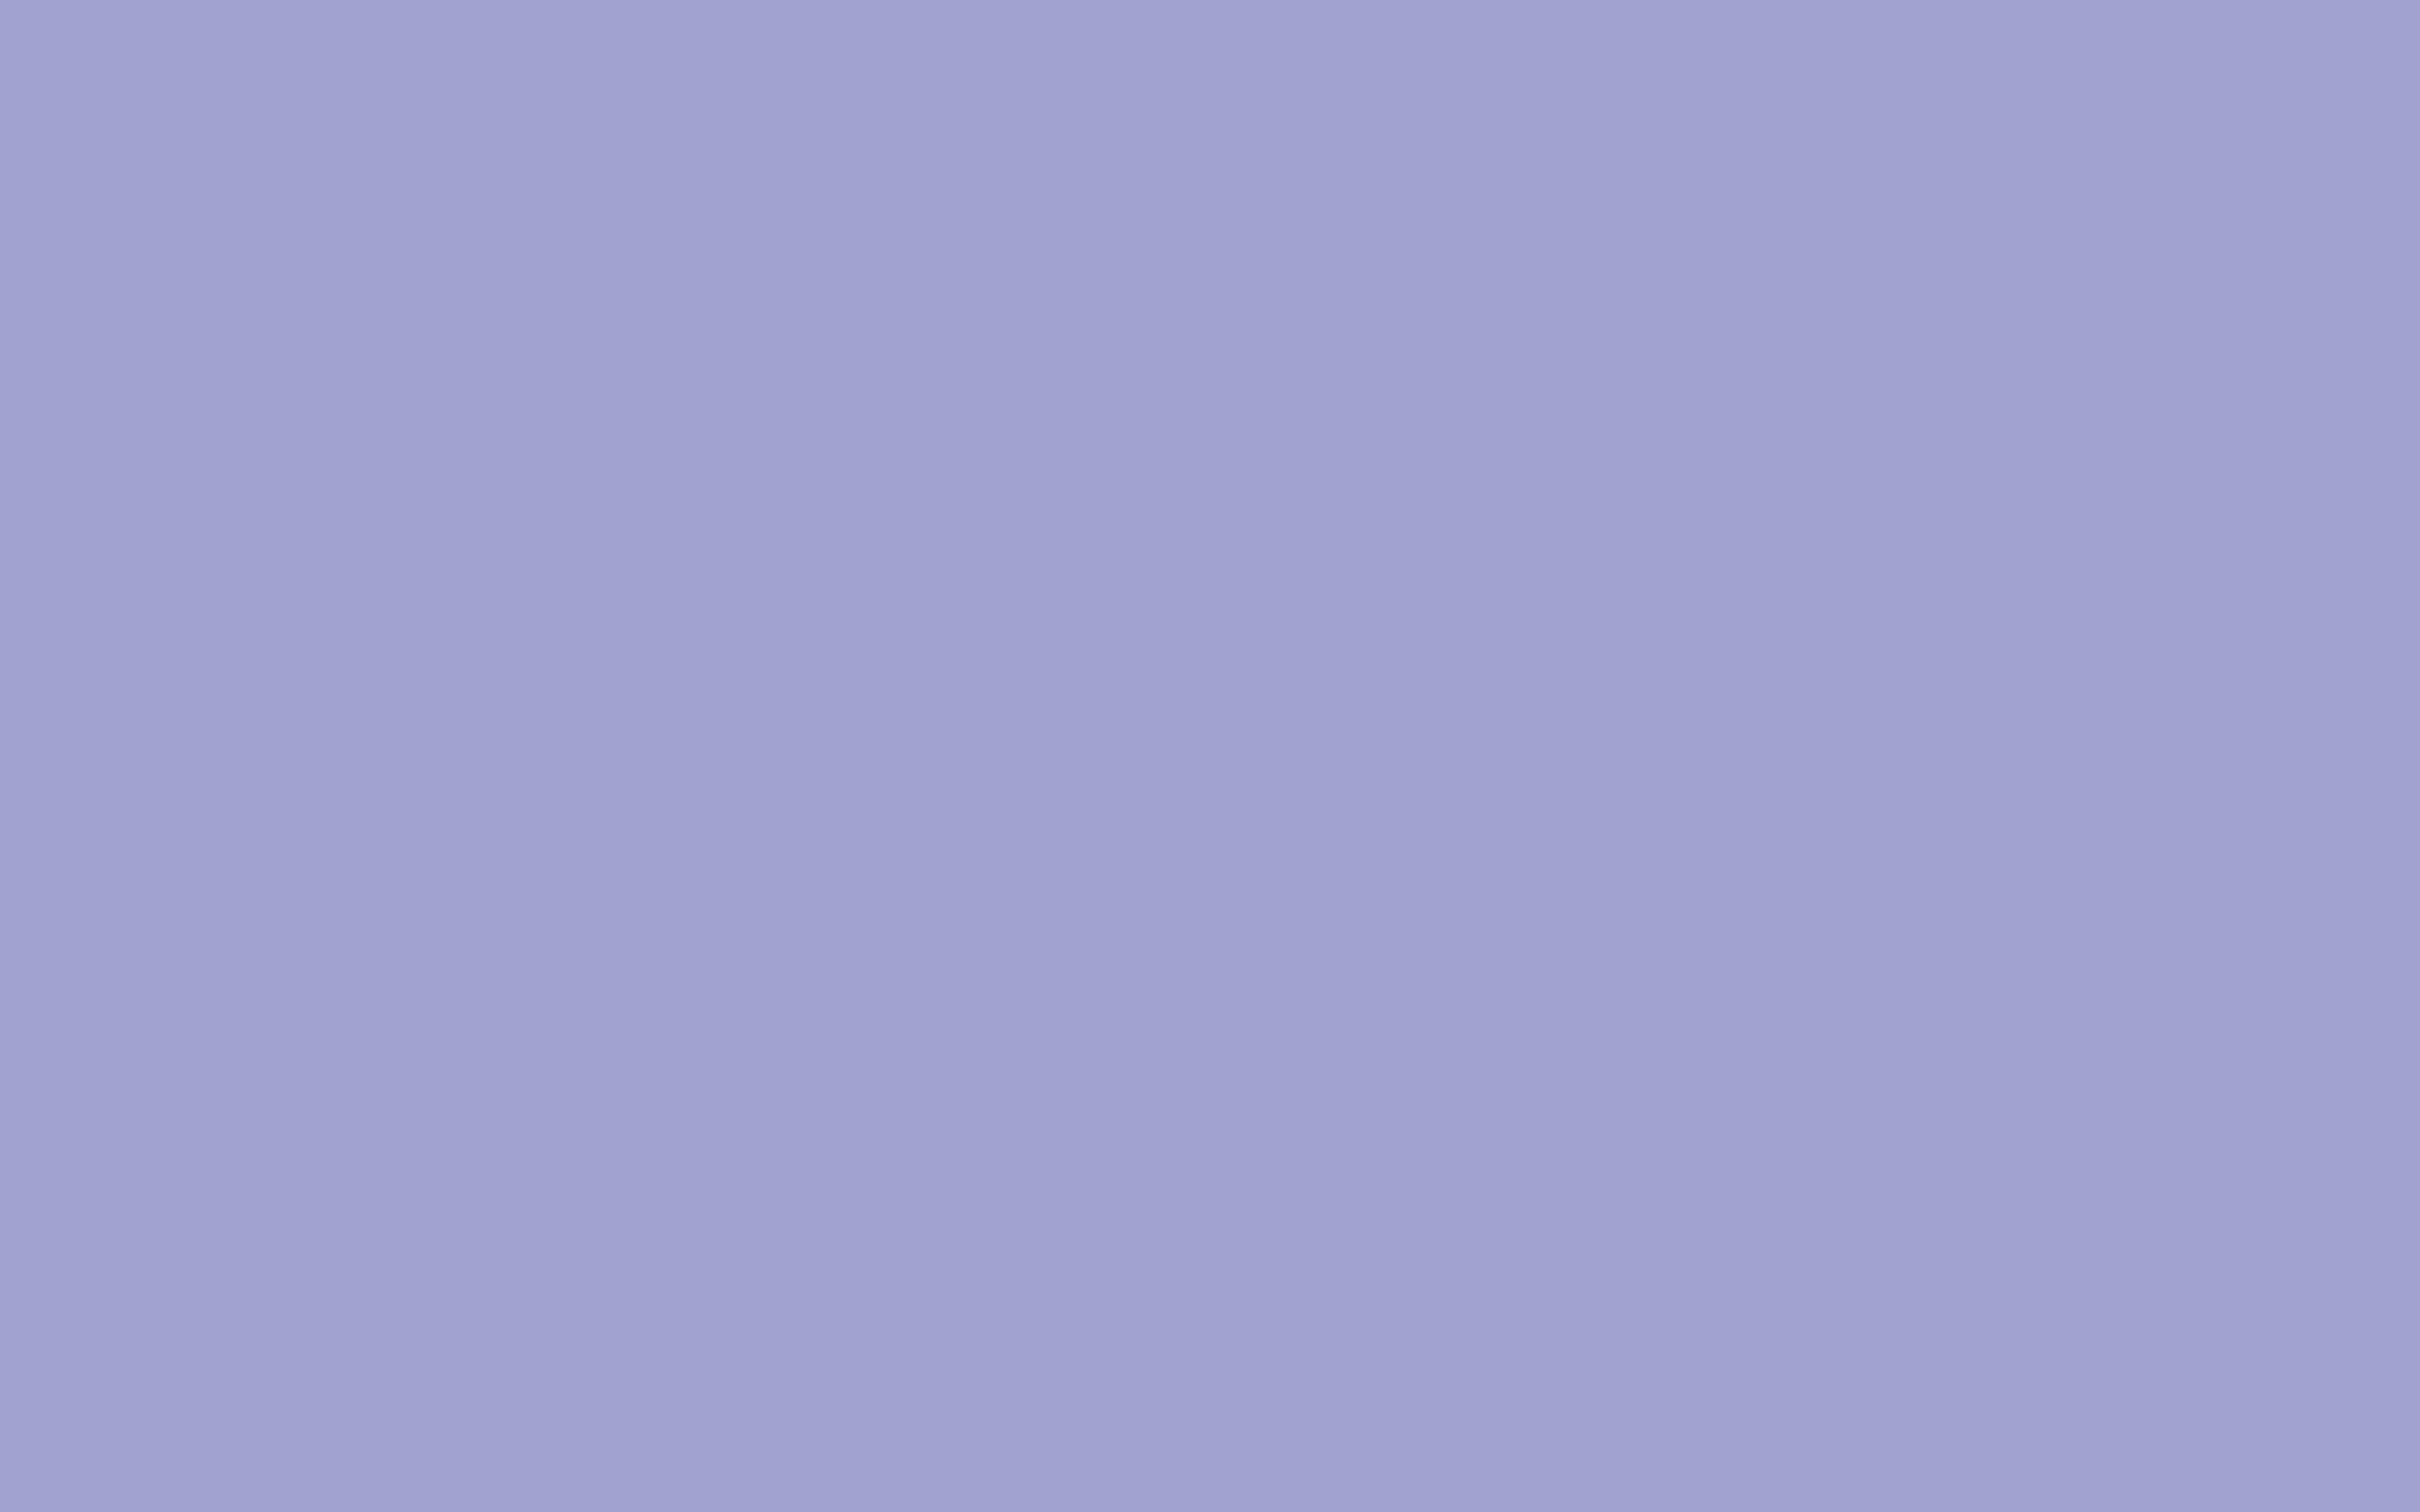 2560x1600 Blue Bell Solid Color Background